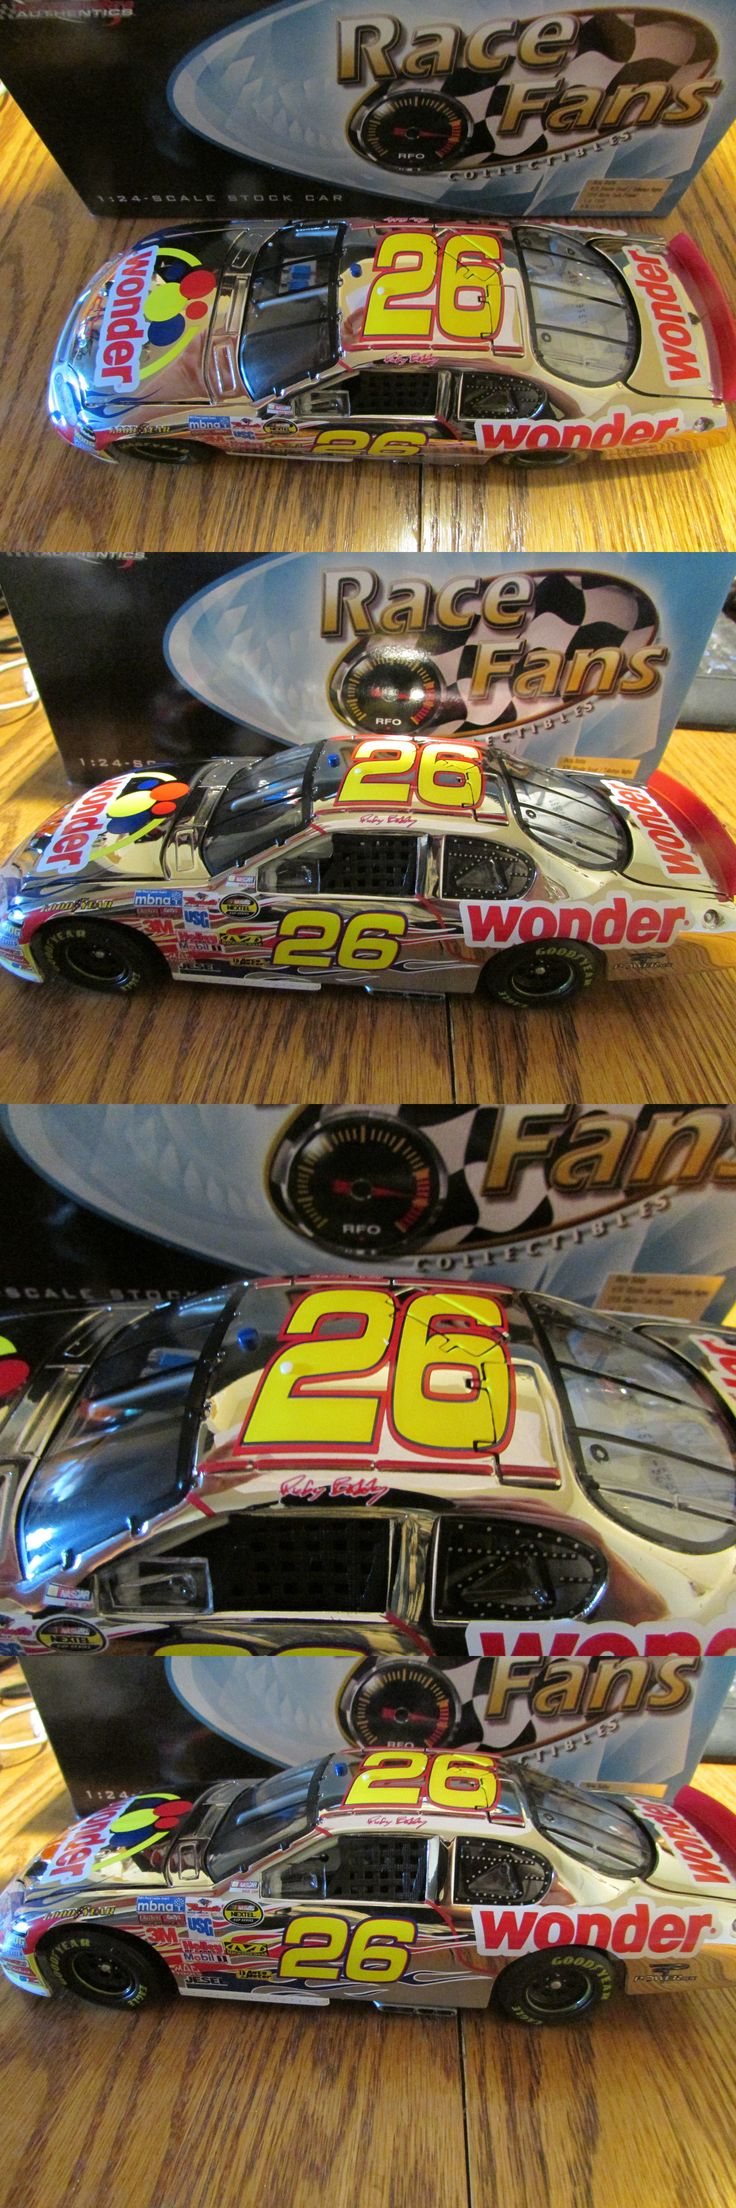 Sport and Touring Cars 180272: 2005 Ricky Bobby #26 Wonder Bread Talladega Nights Chrome Fast Free Shipping -> BUY IT NOW ONLY: $84.99 on eBay!